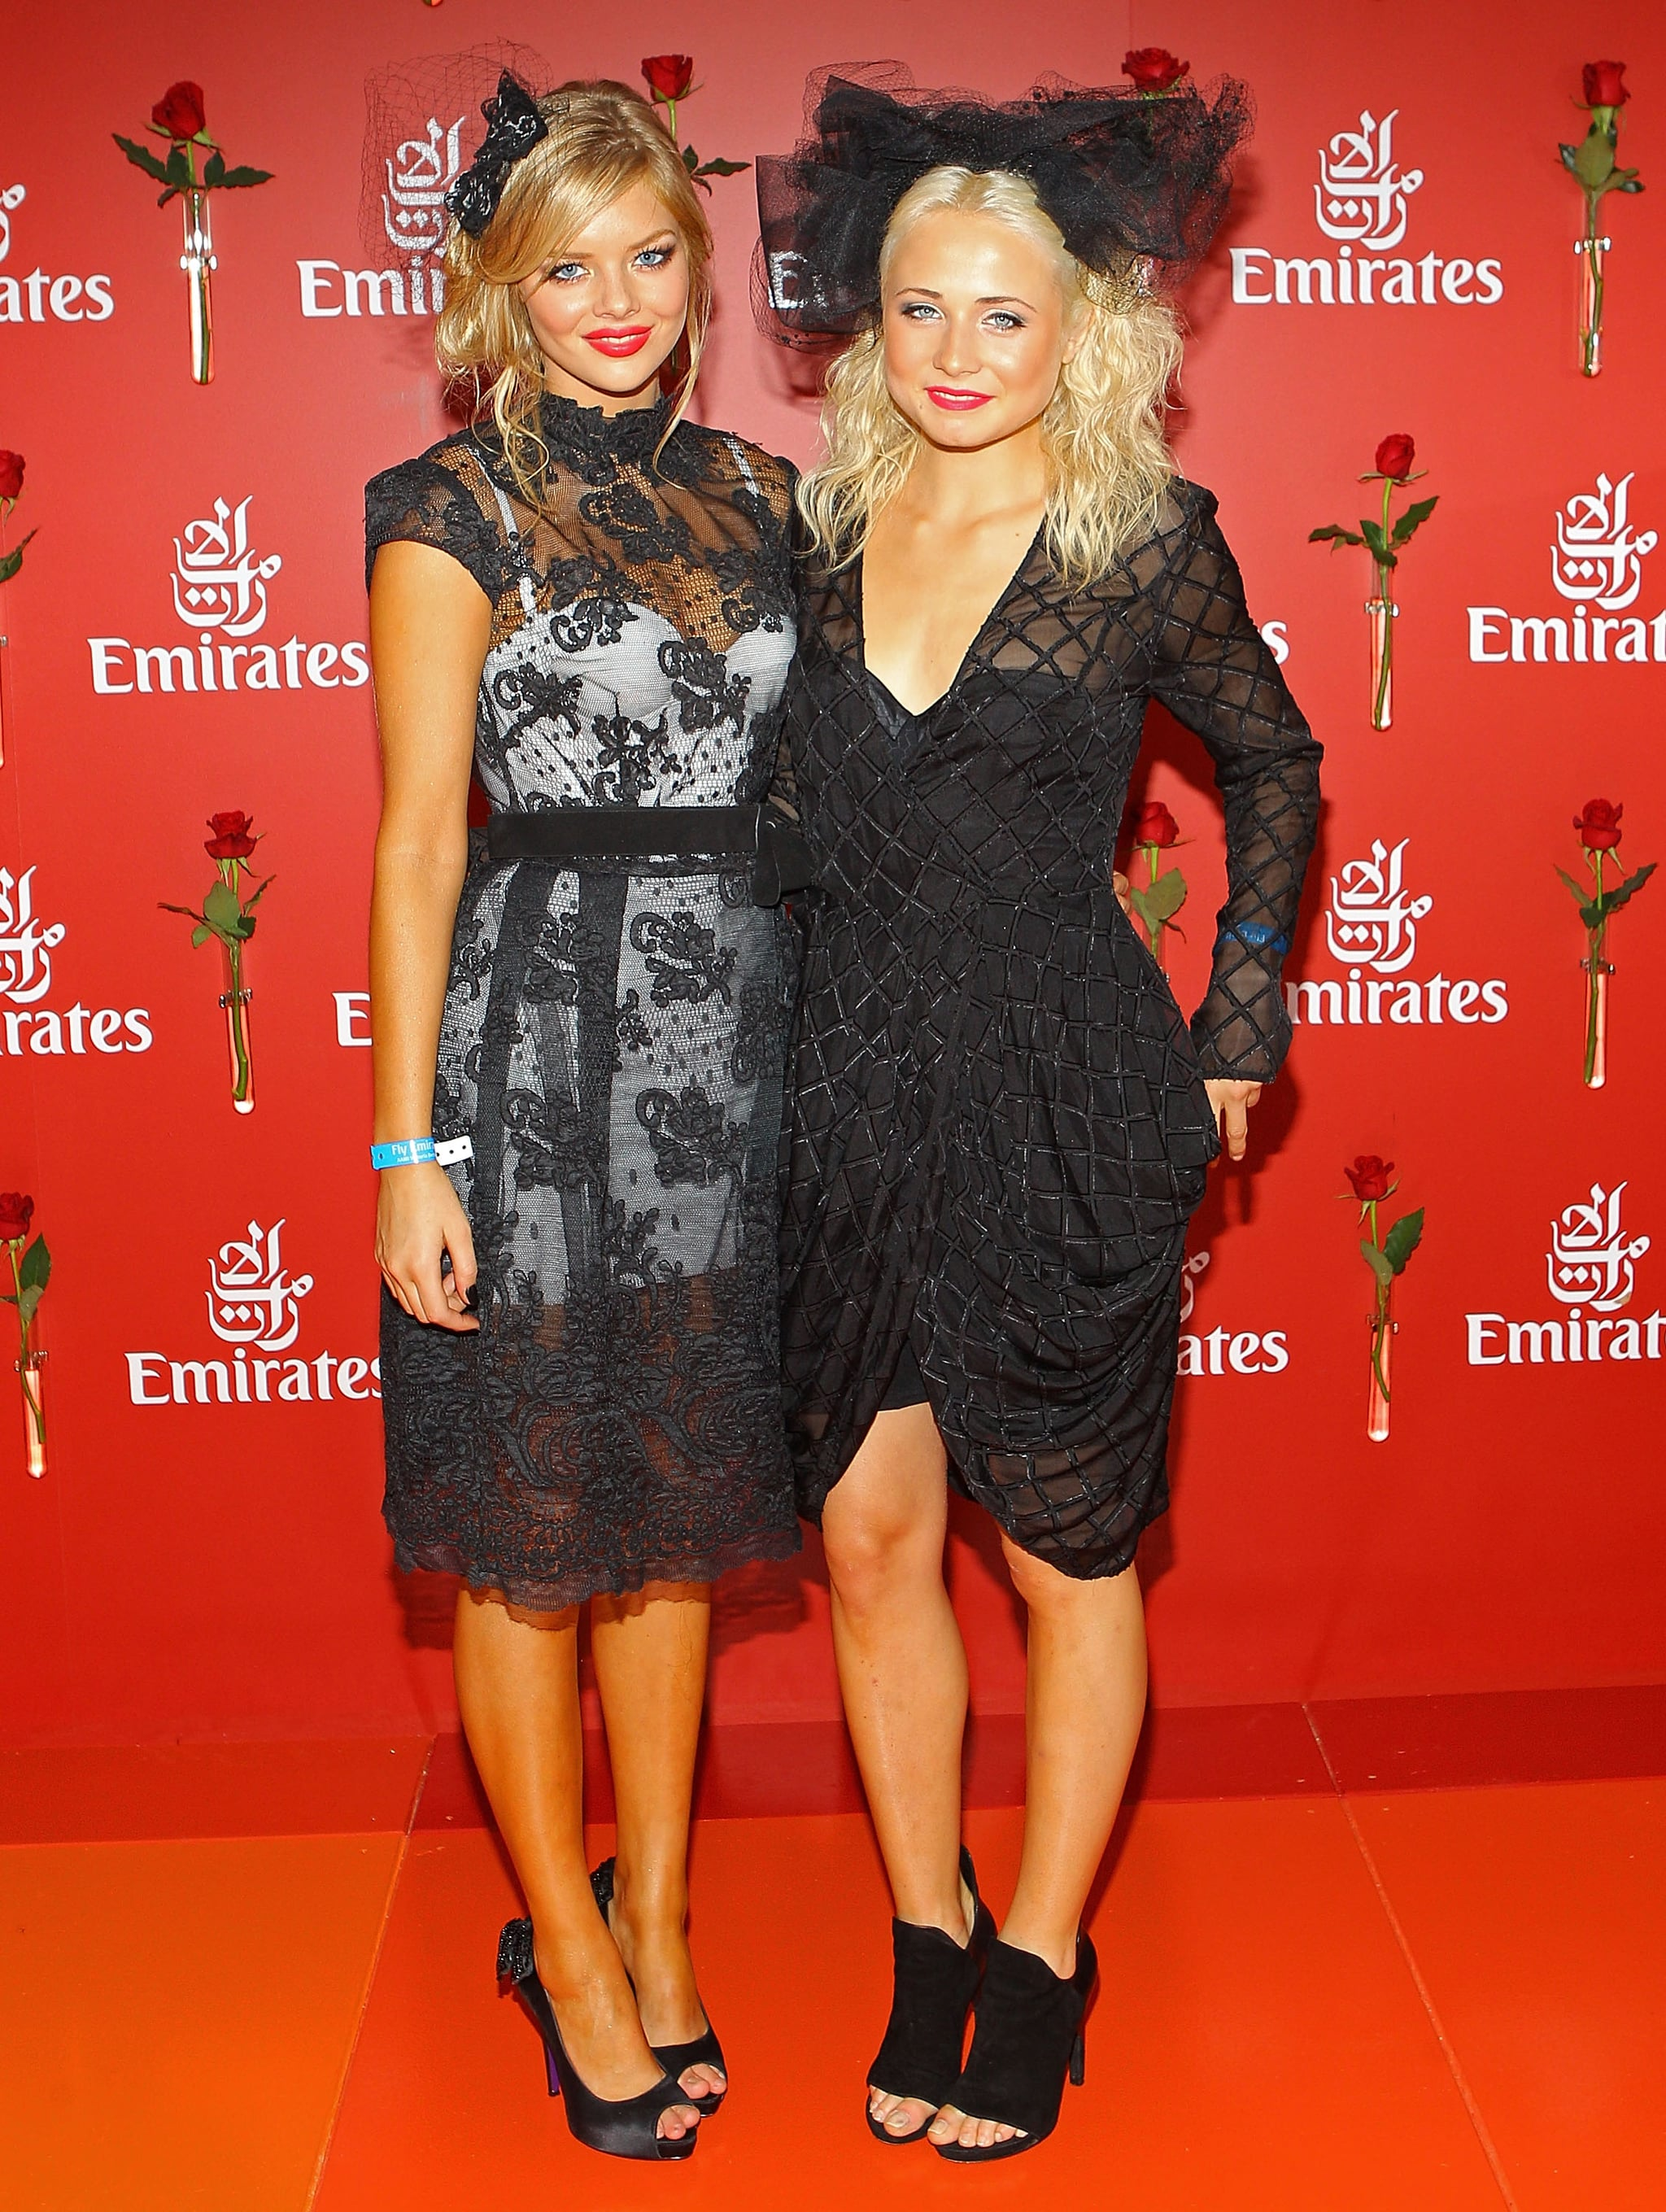 Lacy ladiesTess James and Samara Weaving (in Alex Perry)